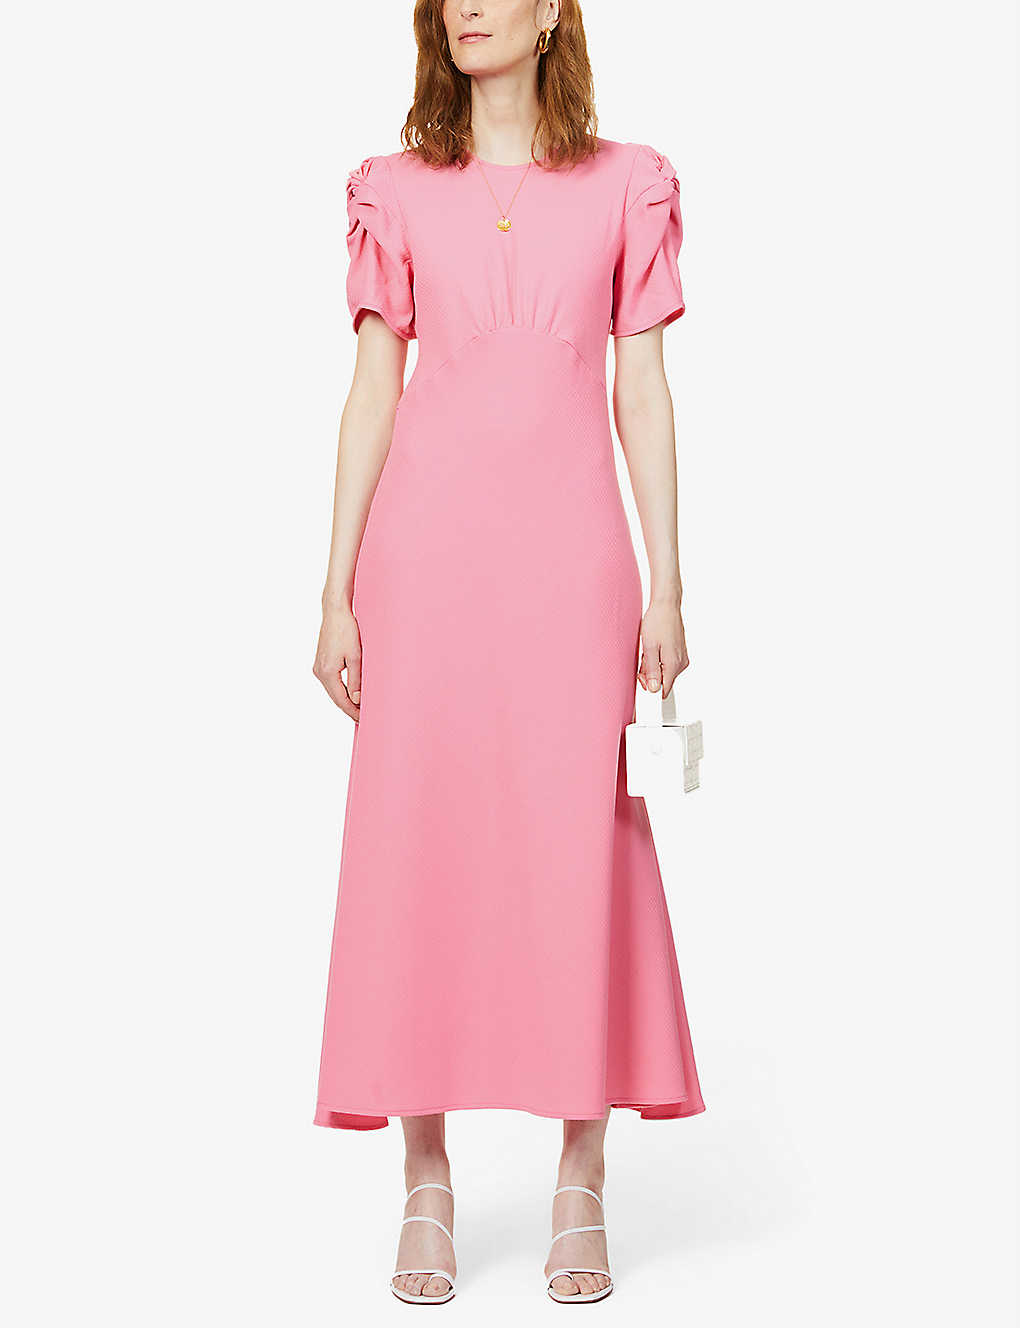 MAGGIE MARILYN: It's Up To You short-sleeved wool midi dress